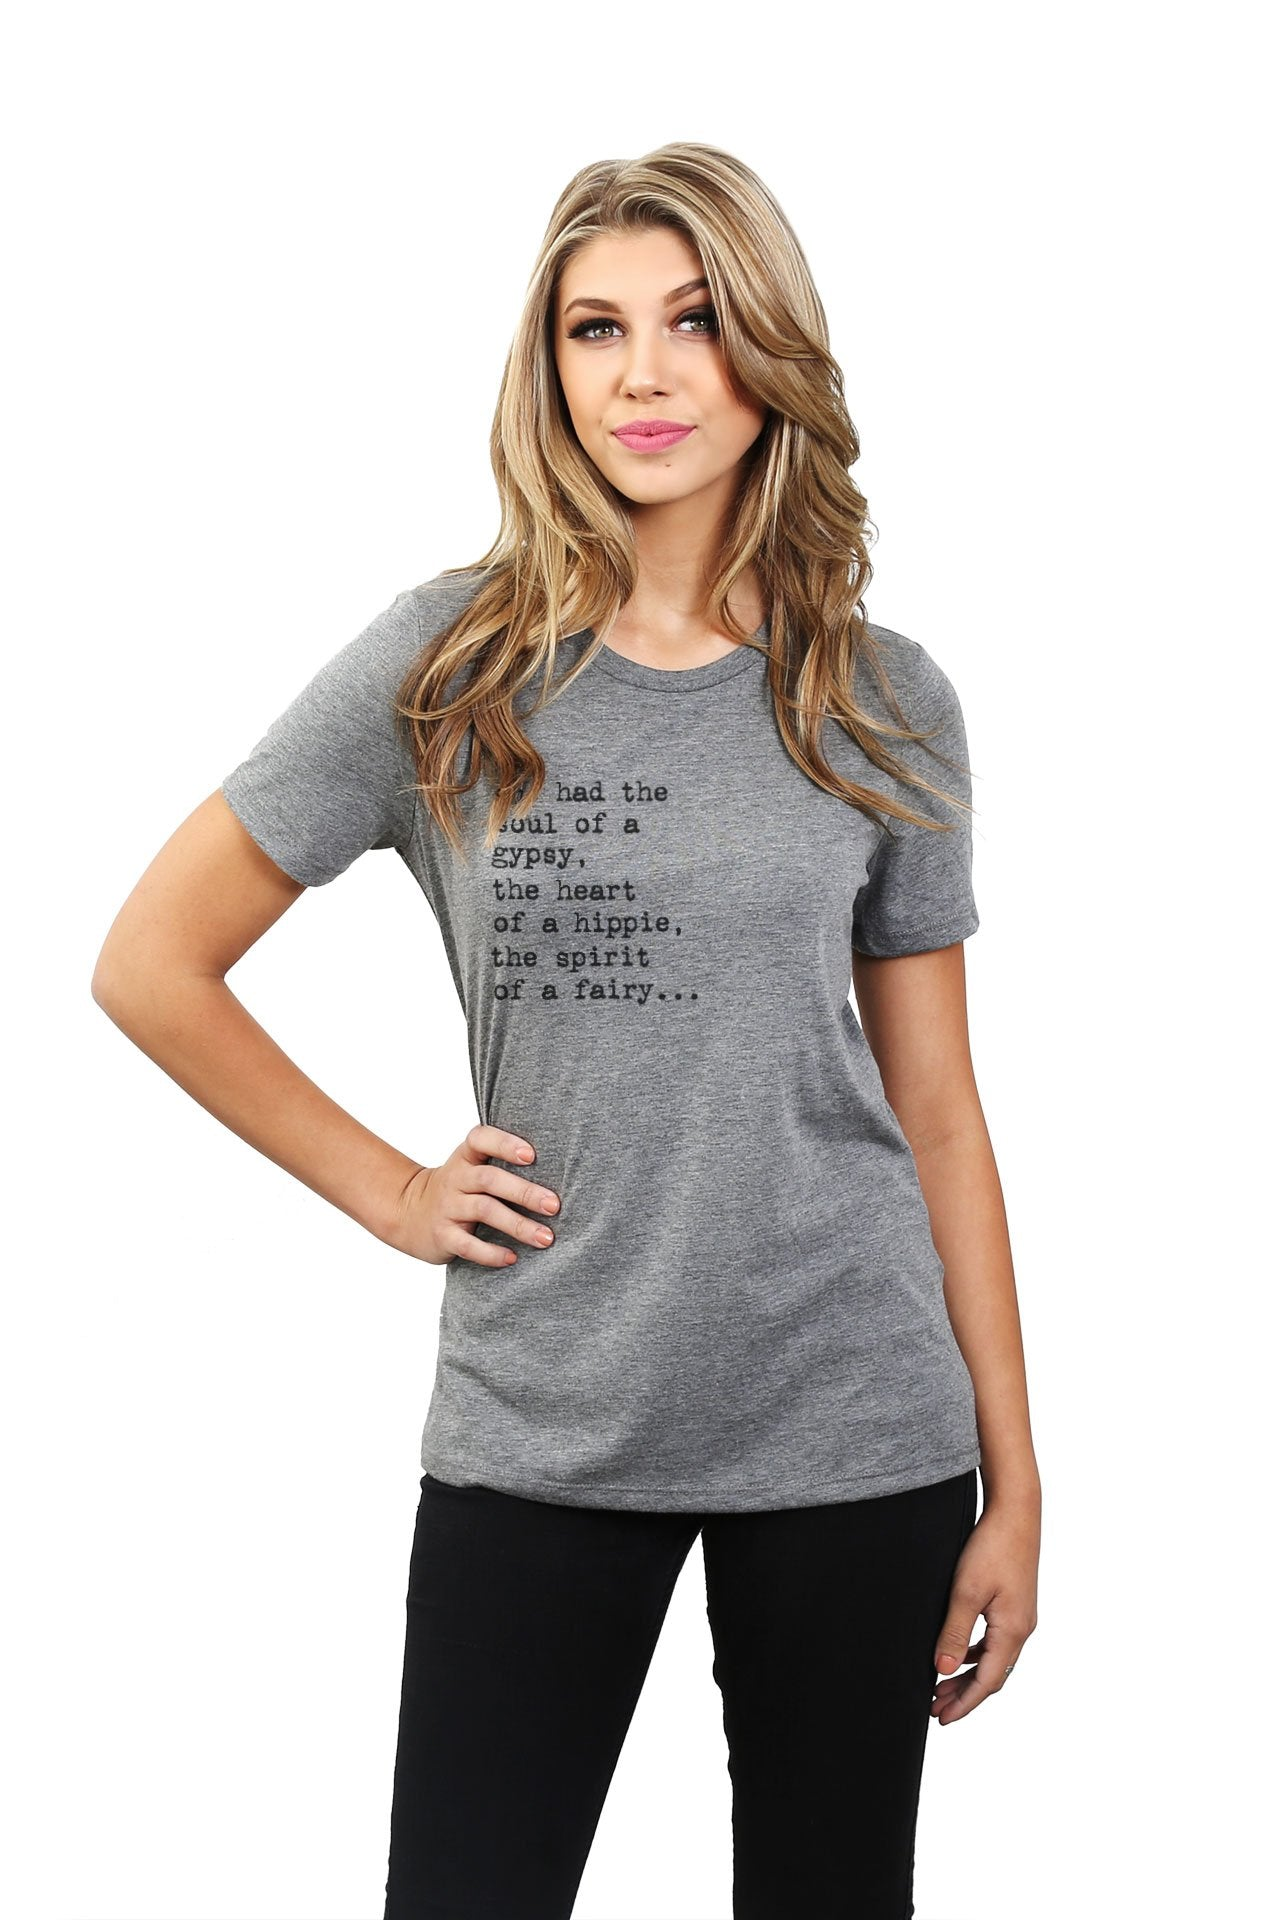 She Had The Soul Of A Gypsy The Heart Of A Hippie The Spirit Of A Fairy Women's Relaxed Crewneck T-Shirt Top Tee Heather Grey